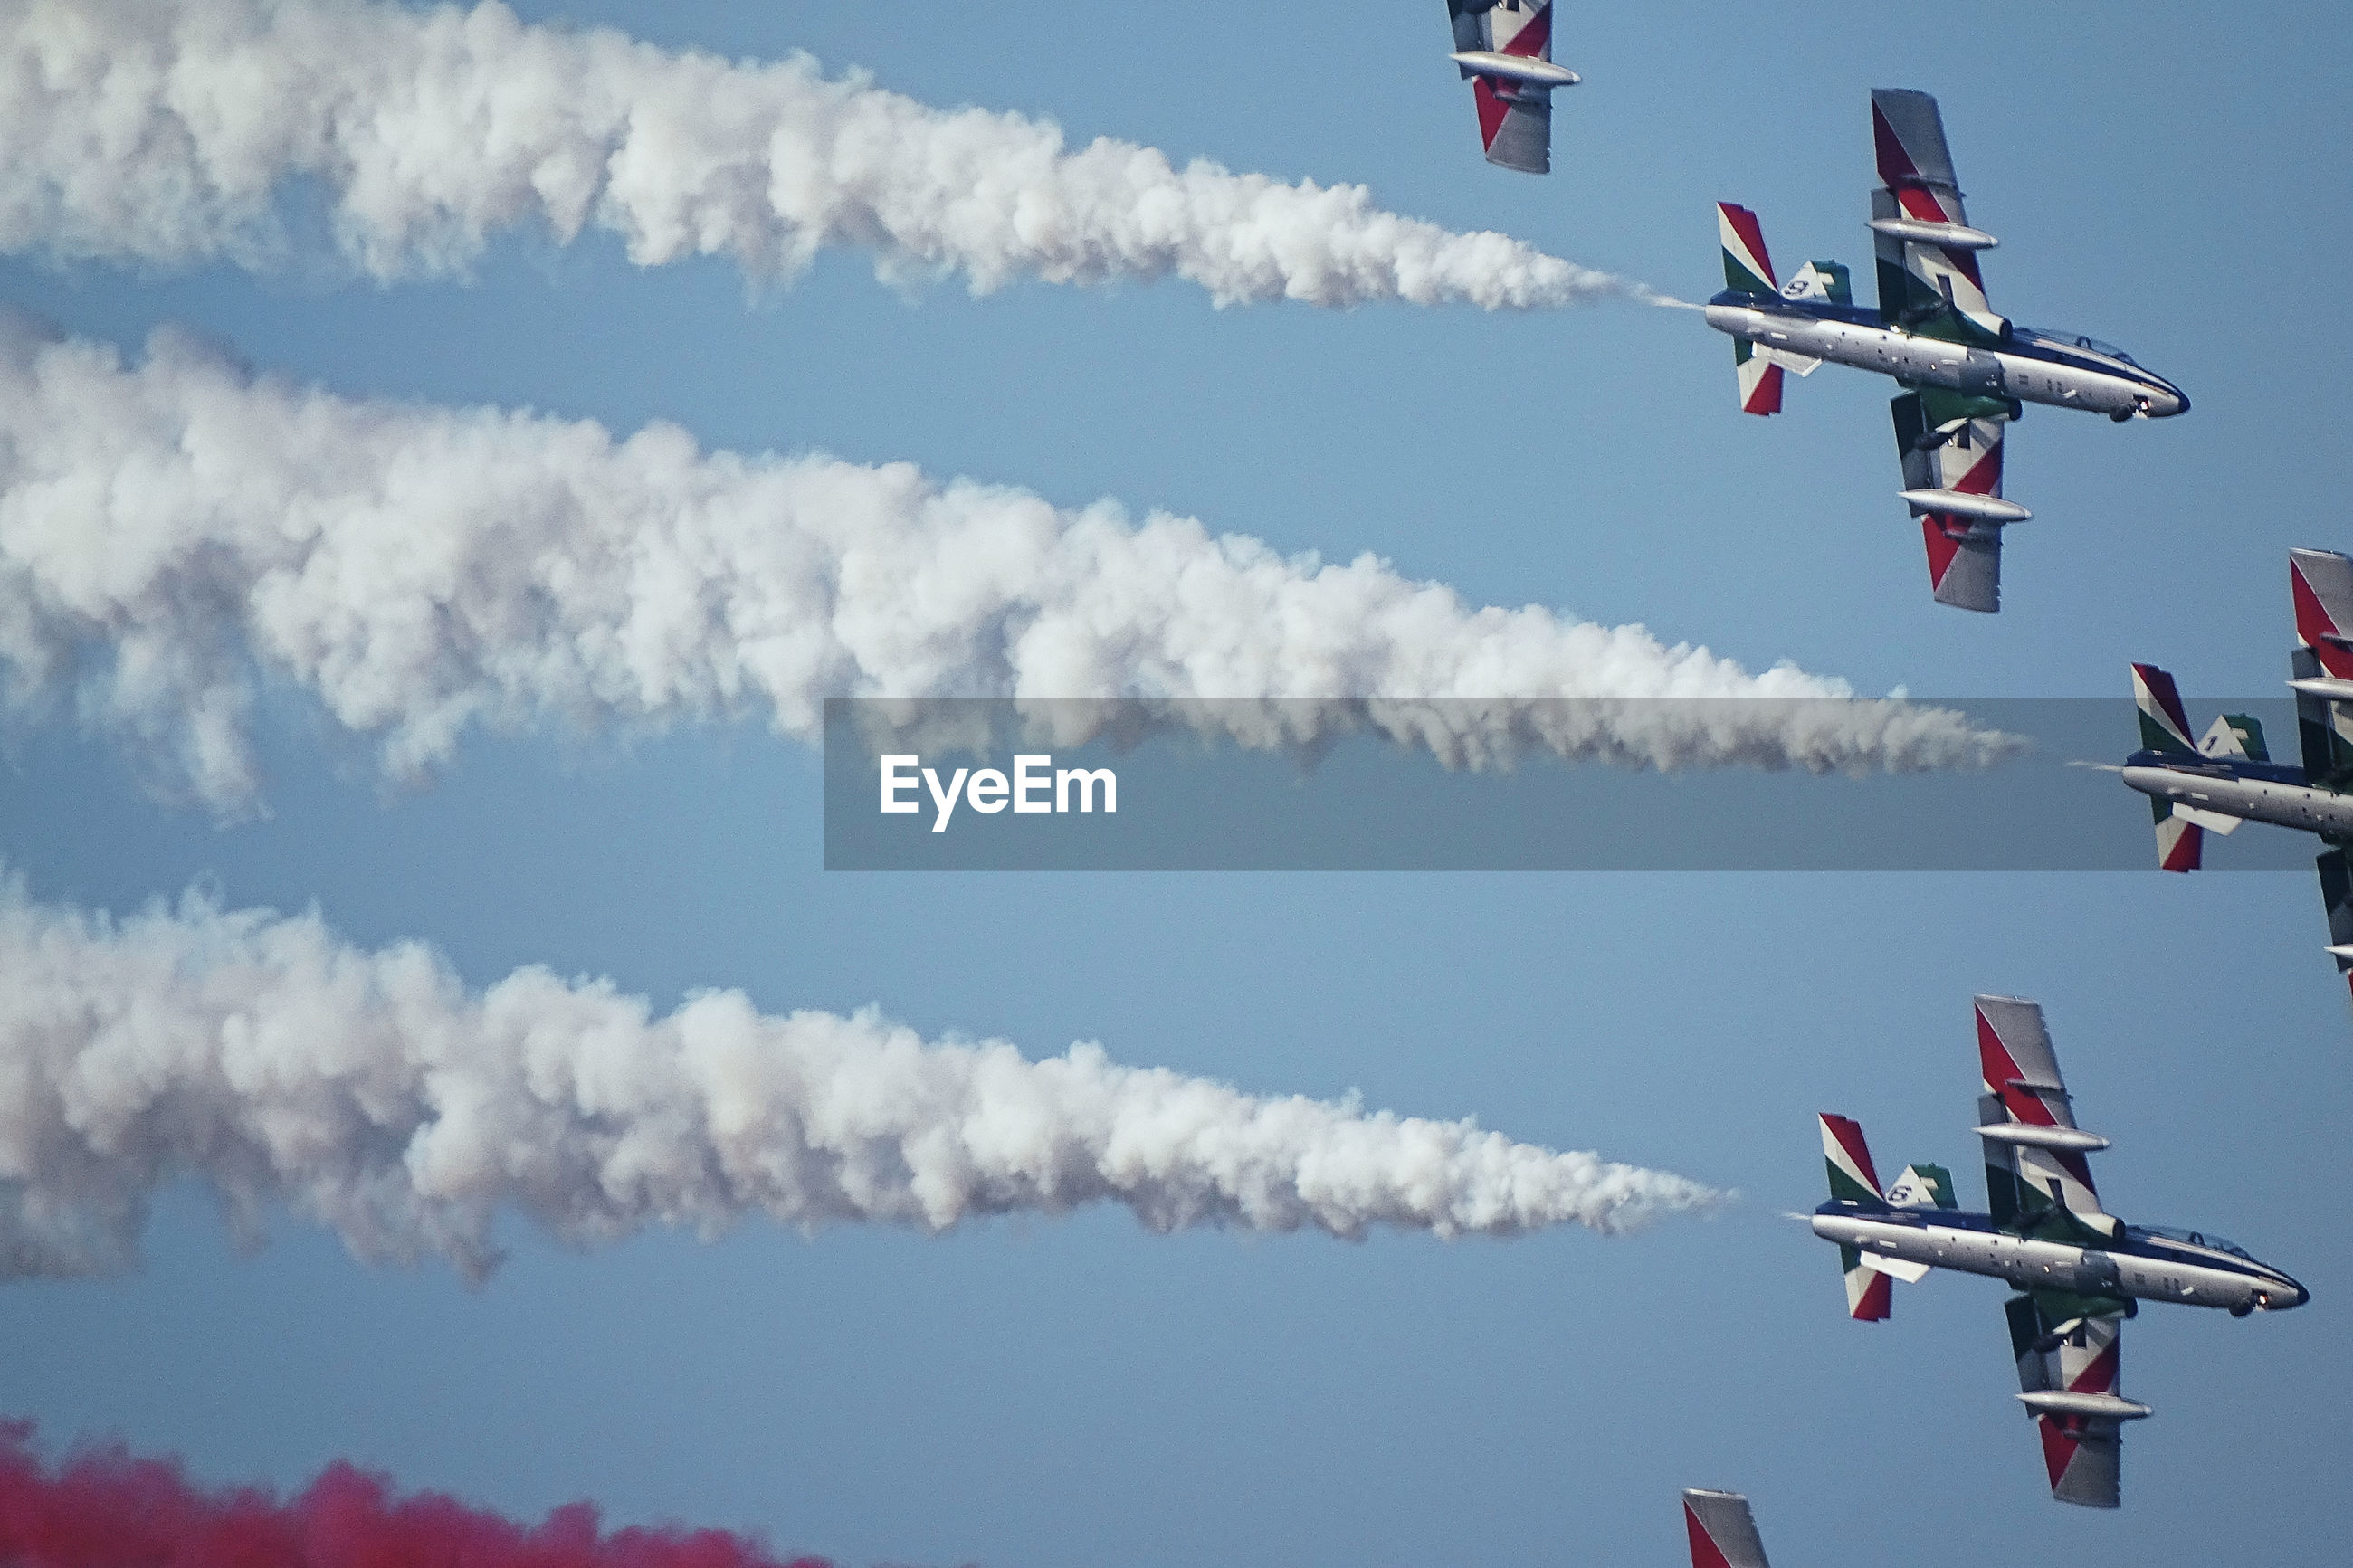 Aerial view of airplane flying in sky during airshow